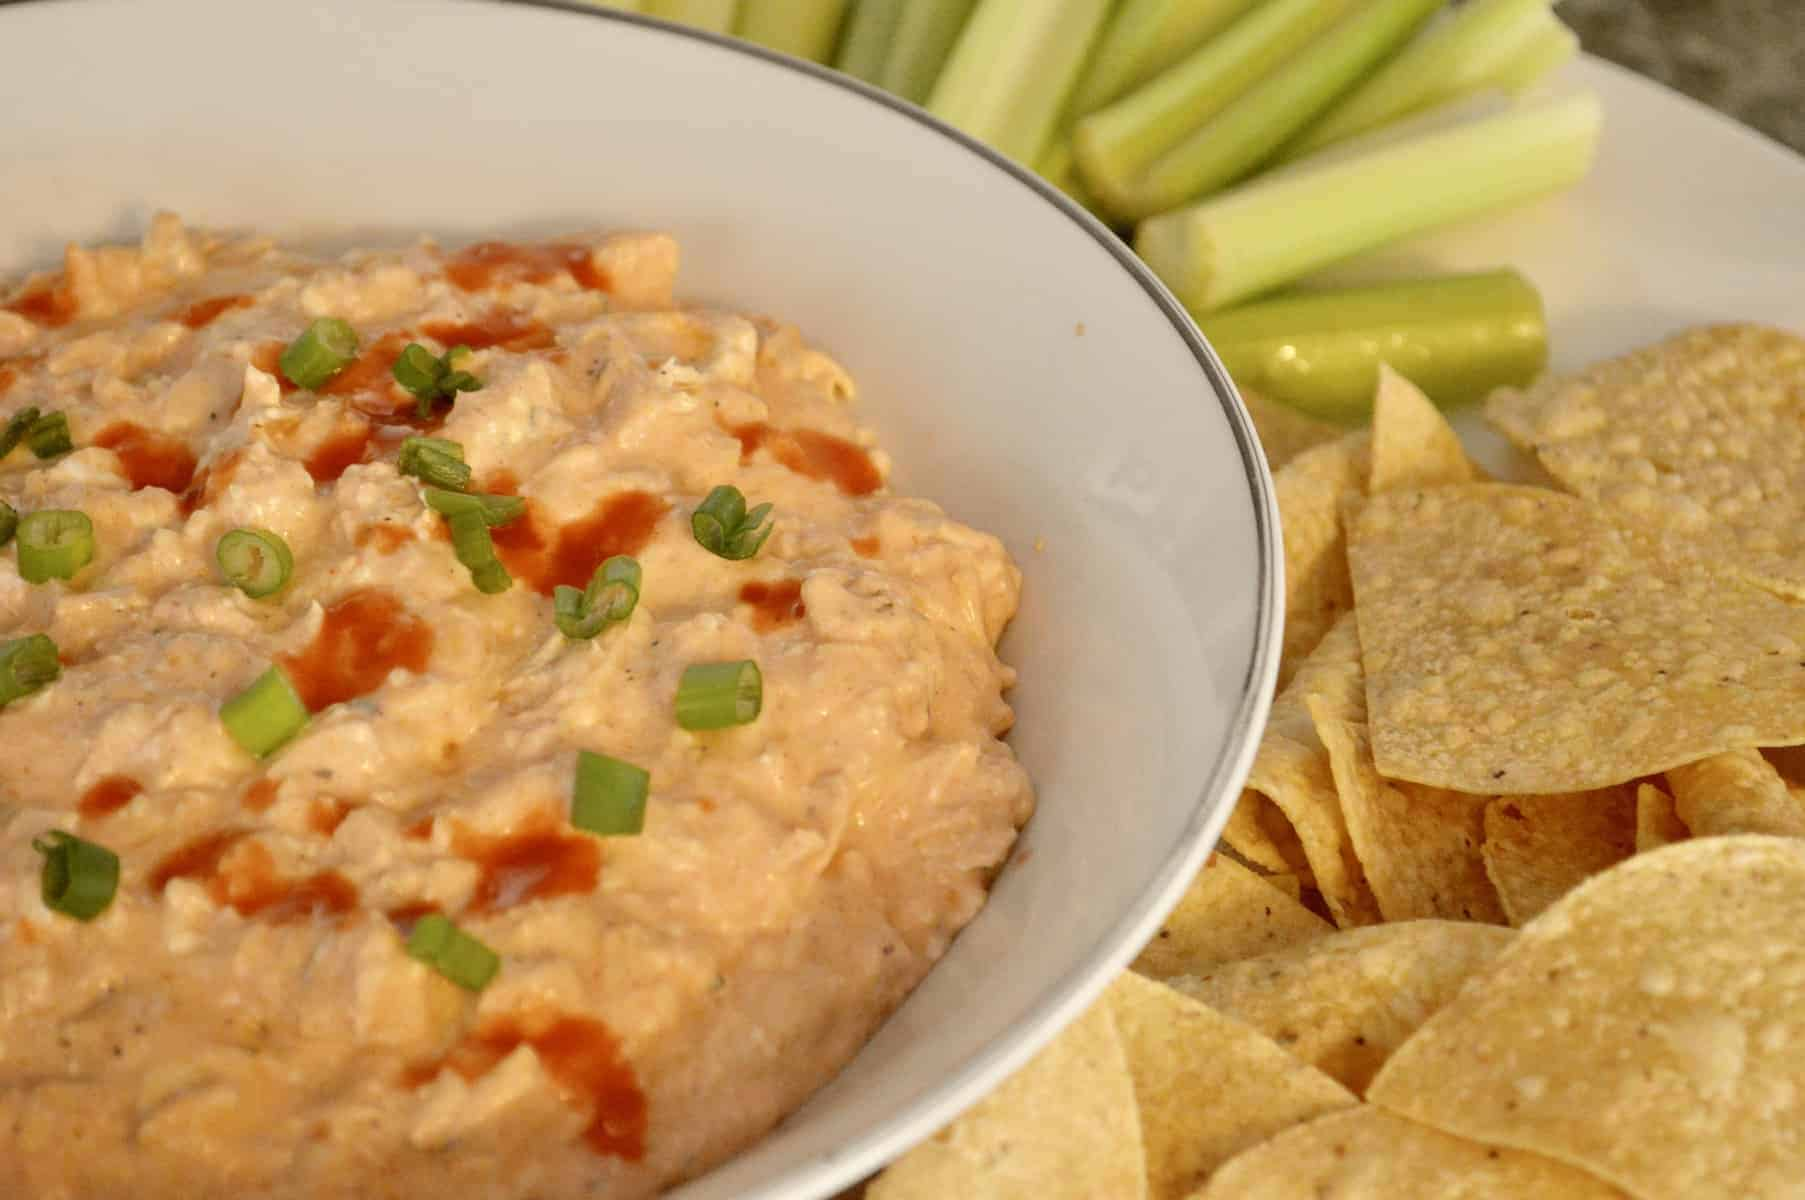 Buffalo Chicken Dip appetizer made in the crock pot with frank's hot sauce